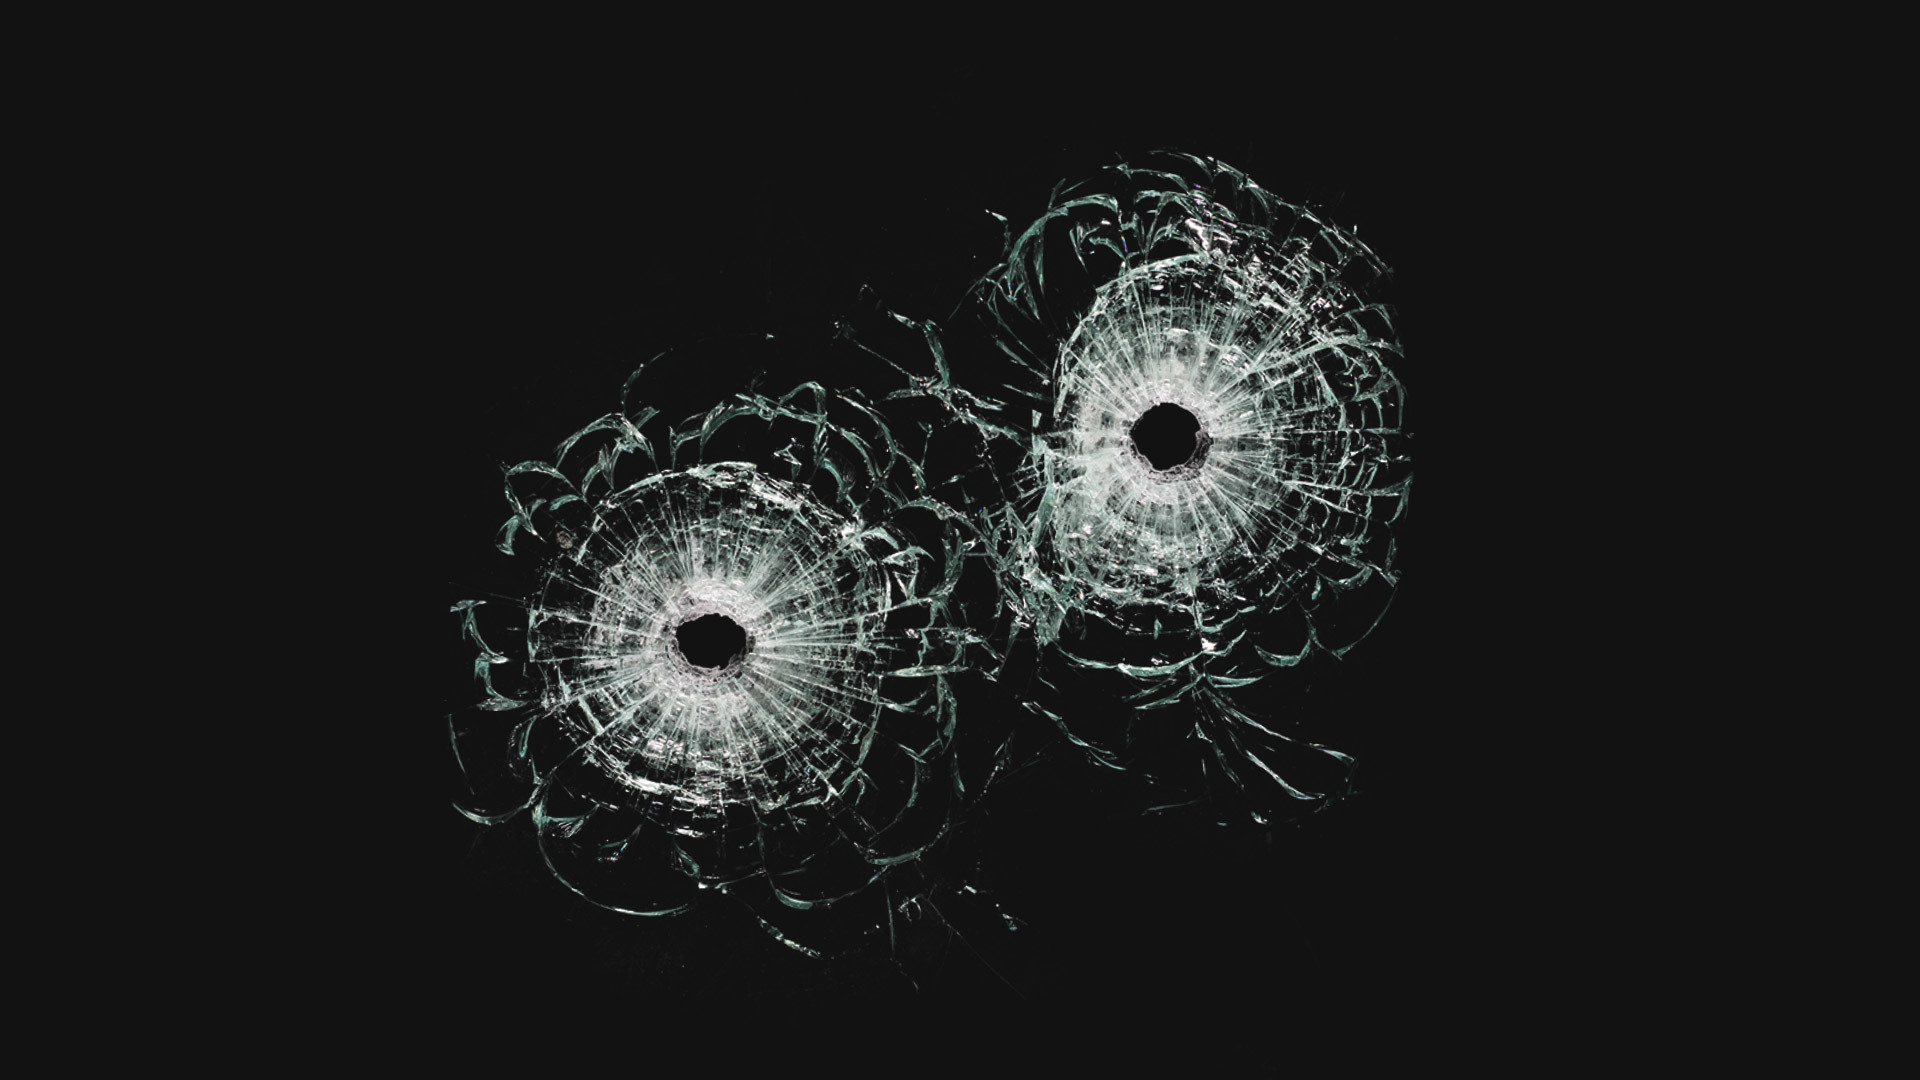 Free Bullet Hole Textures Stock Footage Collection Actionvfx Brown hole, bullet shot hole, gold, picture frame png. bullet hole textures stock footage